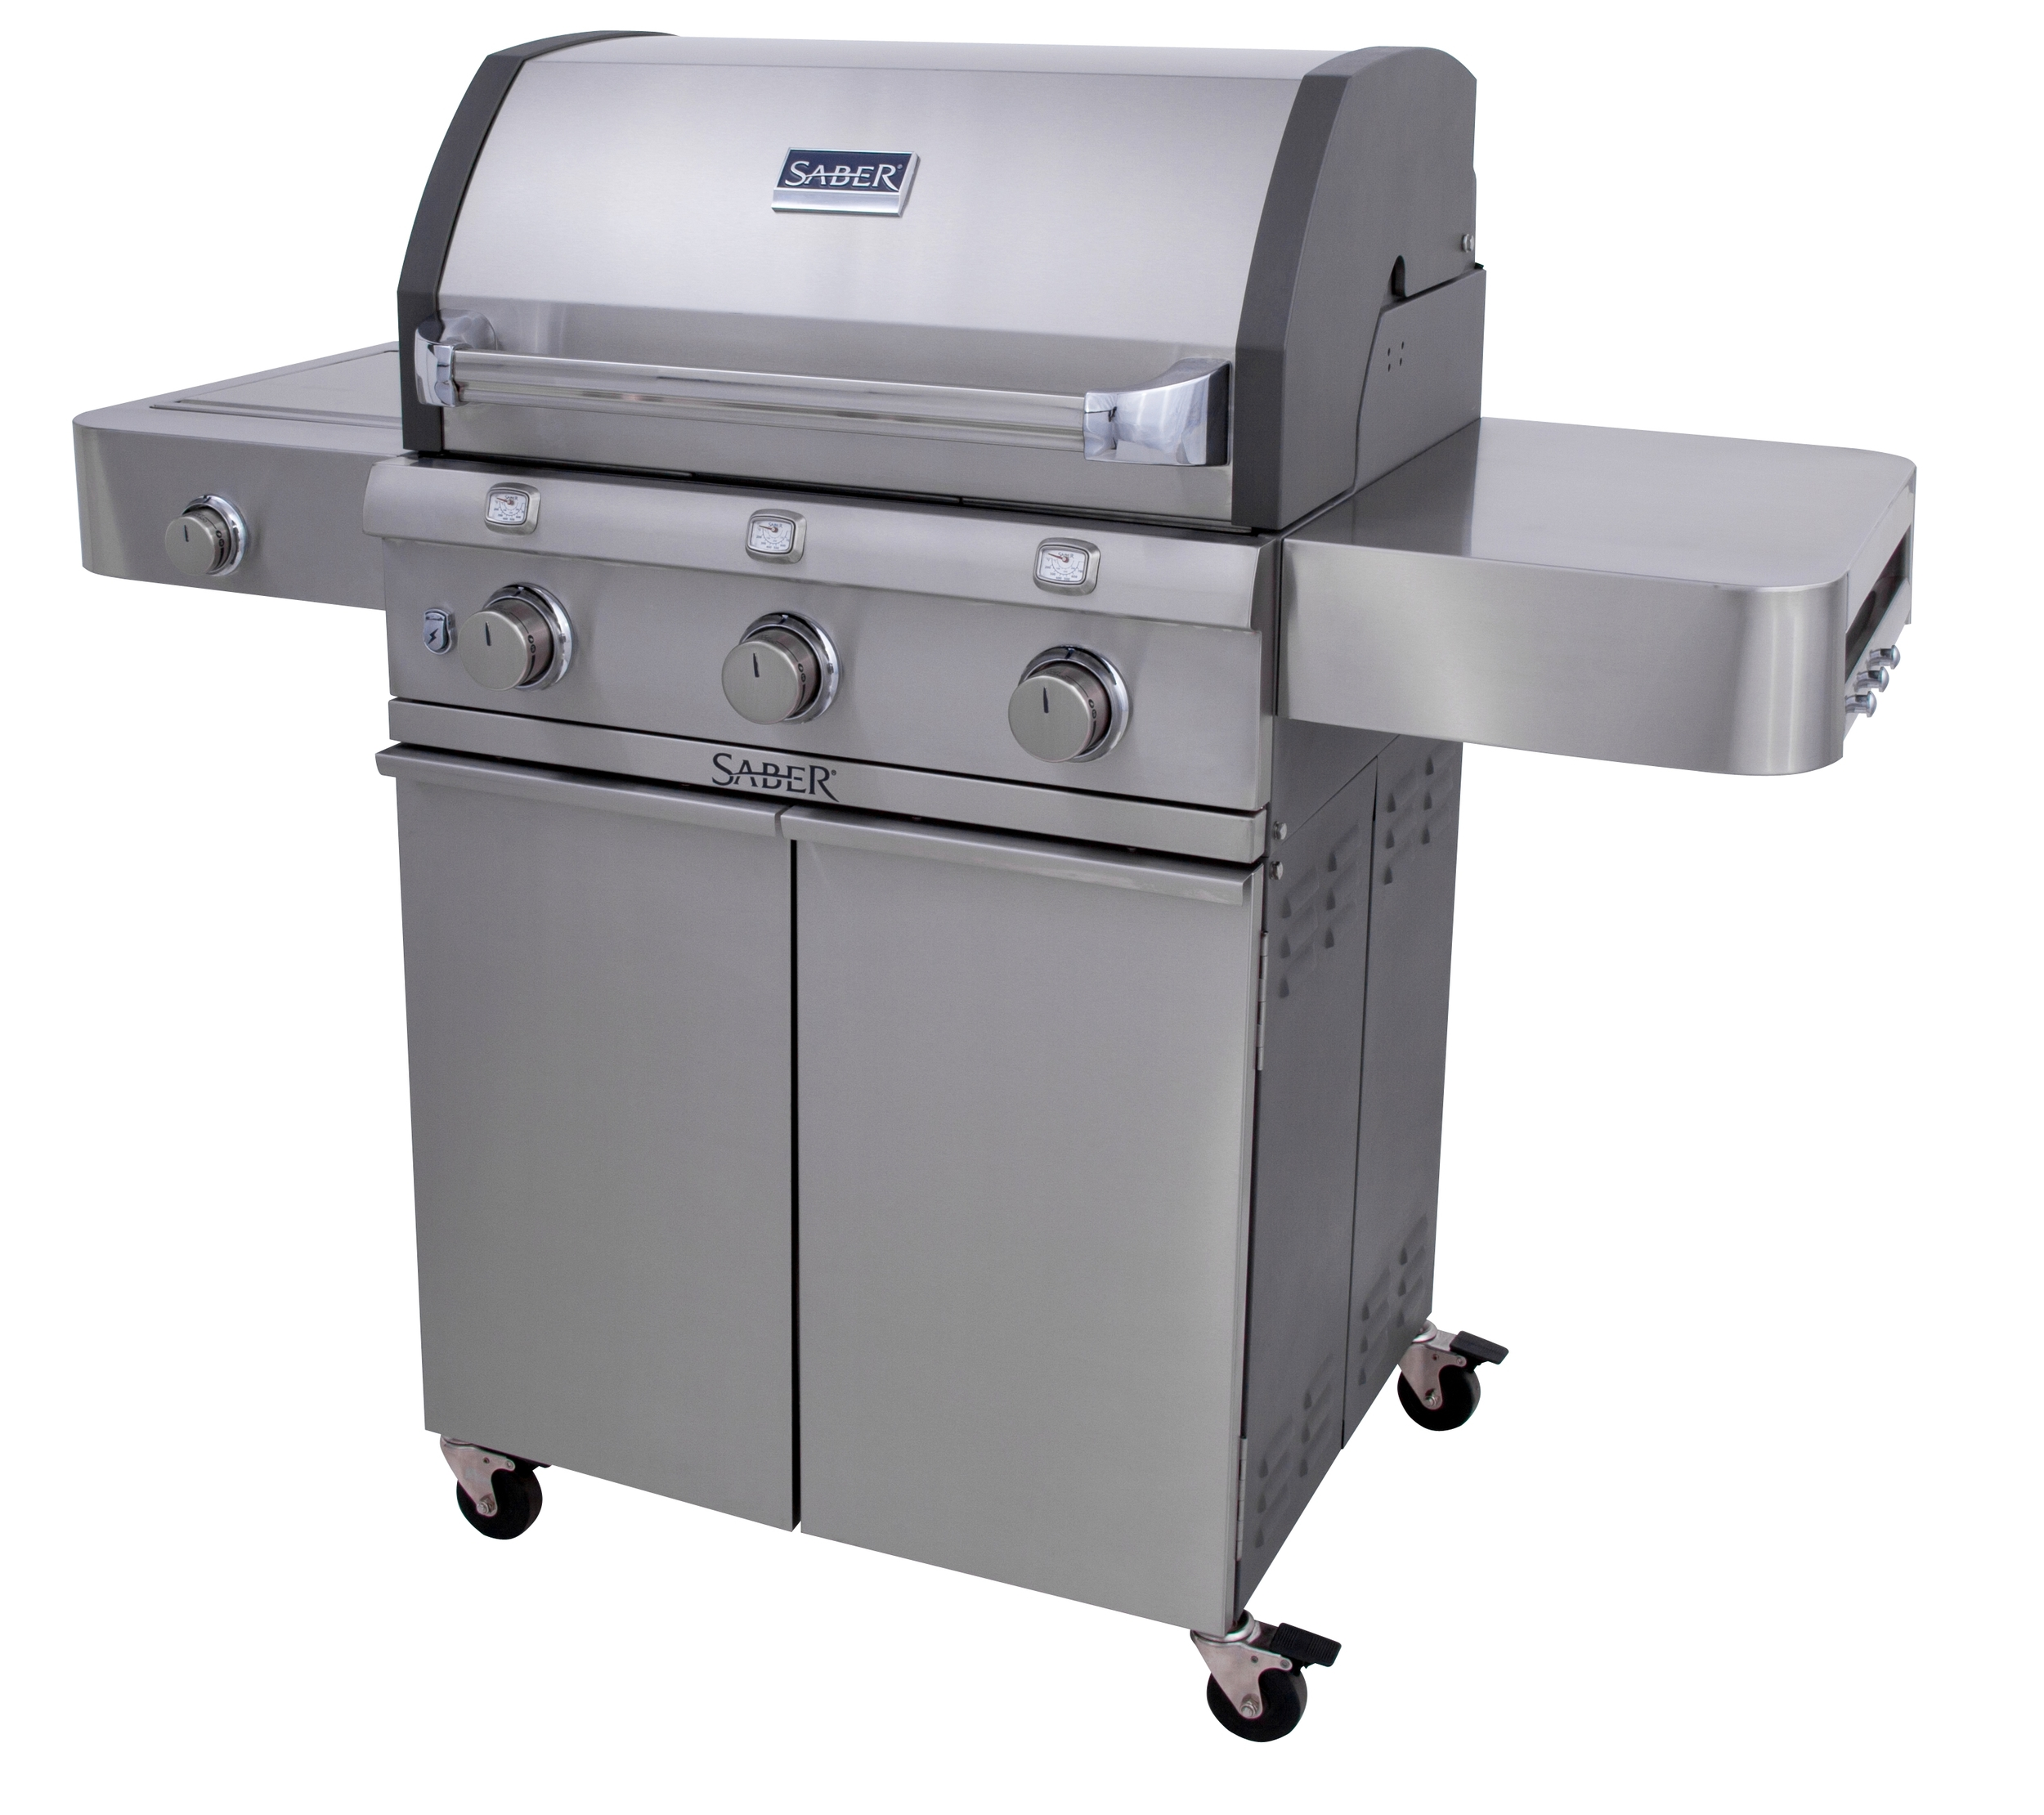 Saber R50CC0312    This full-sized grill is a great value, loaded with features that make  outdoor cooking easier, with better tasting results. Plus a side burner  for warming side dishes and sauces.                               Standard Features   · The SABER patented infrared cooking system for superior grilling performance:    --IR across entire cooking surface.    --Even temperatures,    --no flare-ups, and    --30% less propane consumption.  · All 304 stainless steel (commercial kitchen grade), nonmagnetic  · Strong, stable, durable construction with welded tubular cart and firebox frames  · Shelves bolted to a tube frame provide solid work surfaces  · 304 stainless steel burners, grate system and emitters  · 3 Independent cooking zones. Use one, two or all 3. · Front access grease tray for easy cleaning  · Simple cleanup: just burn off and brush away food debris  · Safe, easy natural gas conversion with SABER's exclusive EZNG technology  · Fast assembly with 26 common fasteners  · SABER grate cleaning tool included    Special Features   · 675 total square inches of cooking area (500 primary, 175 secondary)  · 34,000 total BTUs  · Enclosed cart with heavy duty 304 stainless side shelves  · 304 stainless steel lid with die-cast end caps  · Three 304 stainless steel tube burners (24,000 total BTUs, including 10,000 for side burner)  · Single die-cast side burner with cast brass cap  · Push button electronic ignition at each burner for reliable start-up every time  · Adjustable porcelain warming rack with storage and roasting positions  · Heavy duty 3-inch locking casters